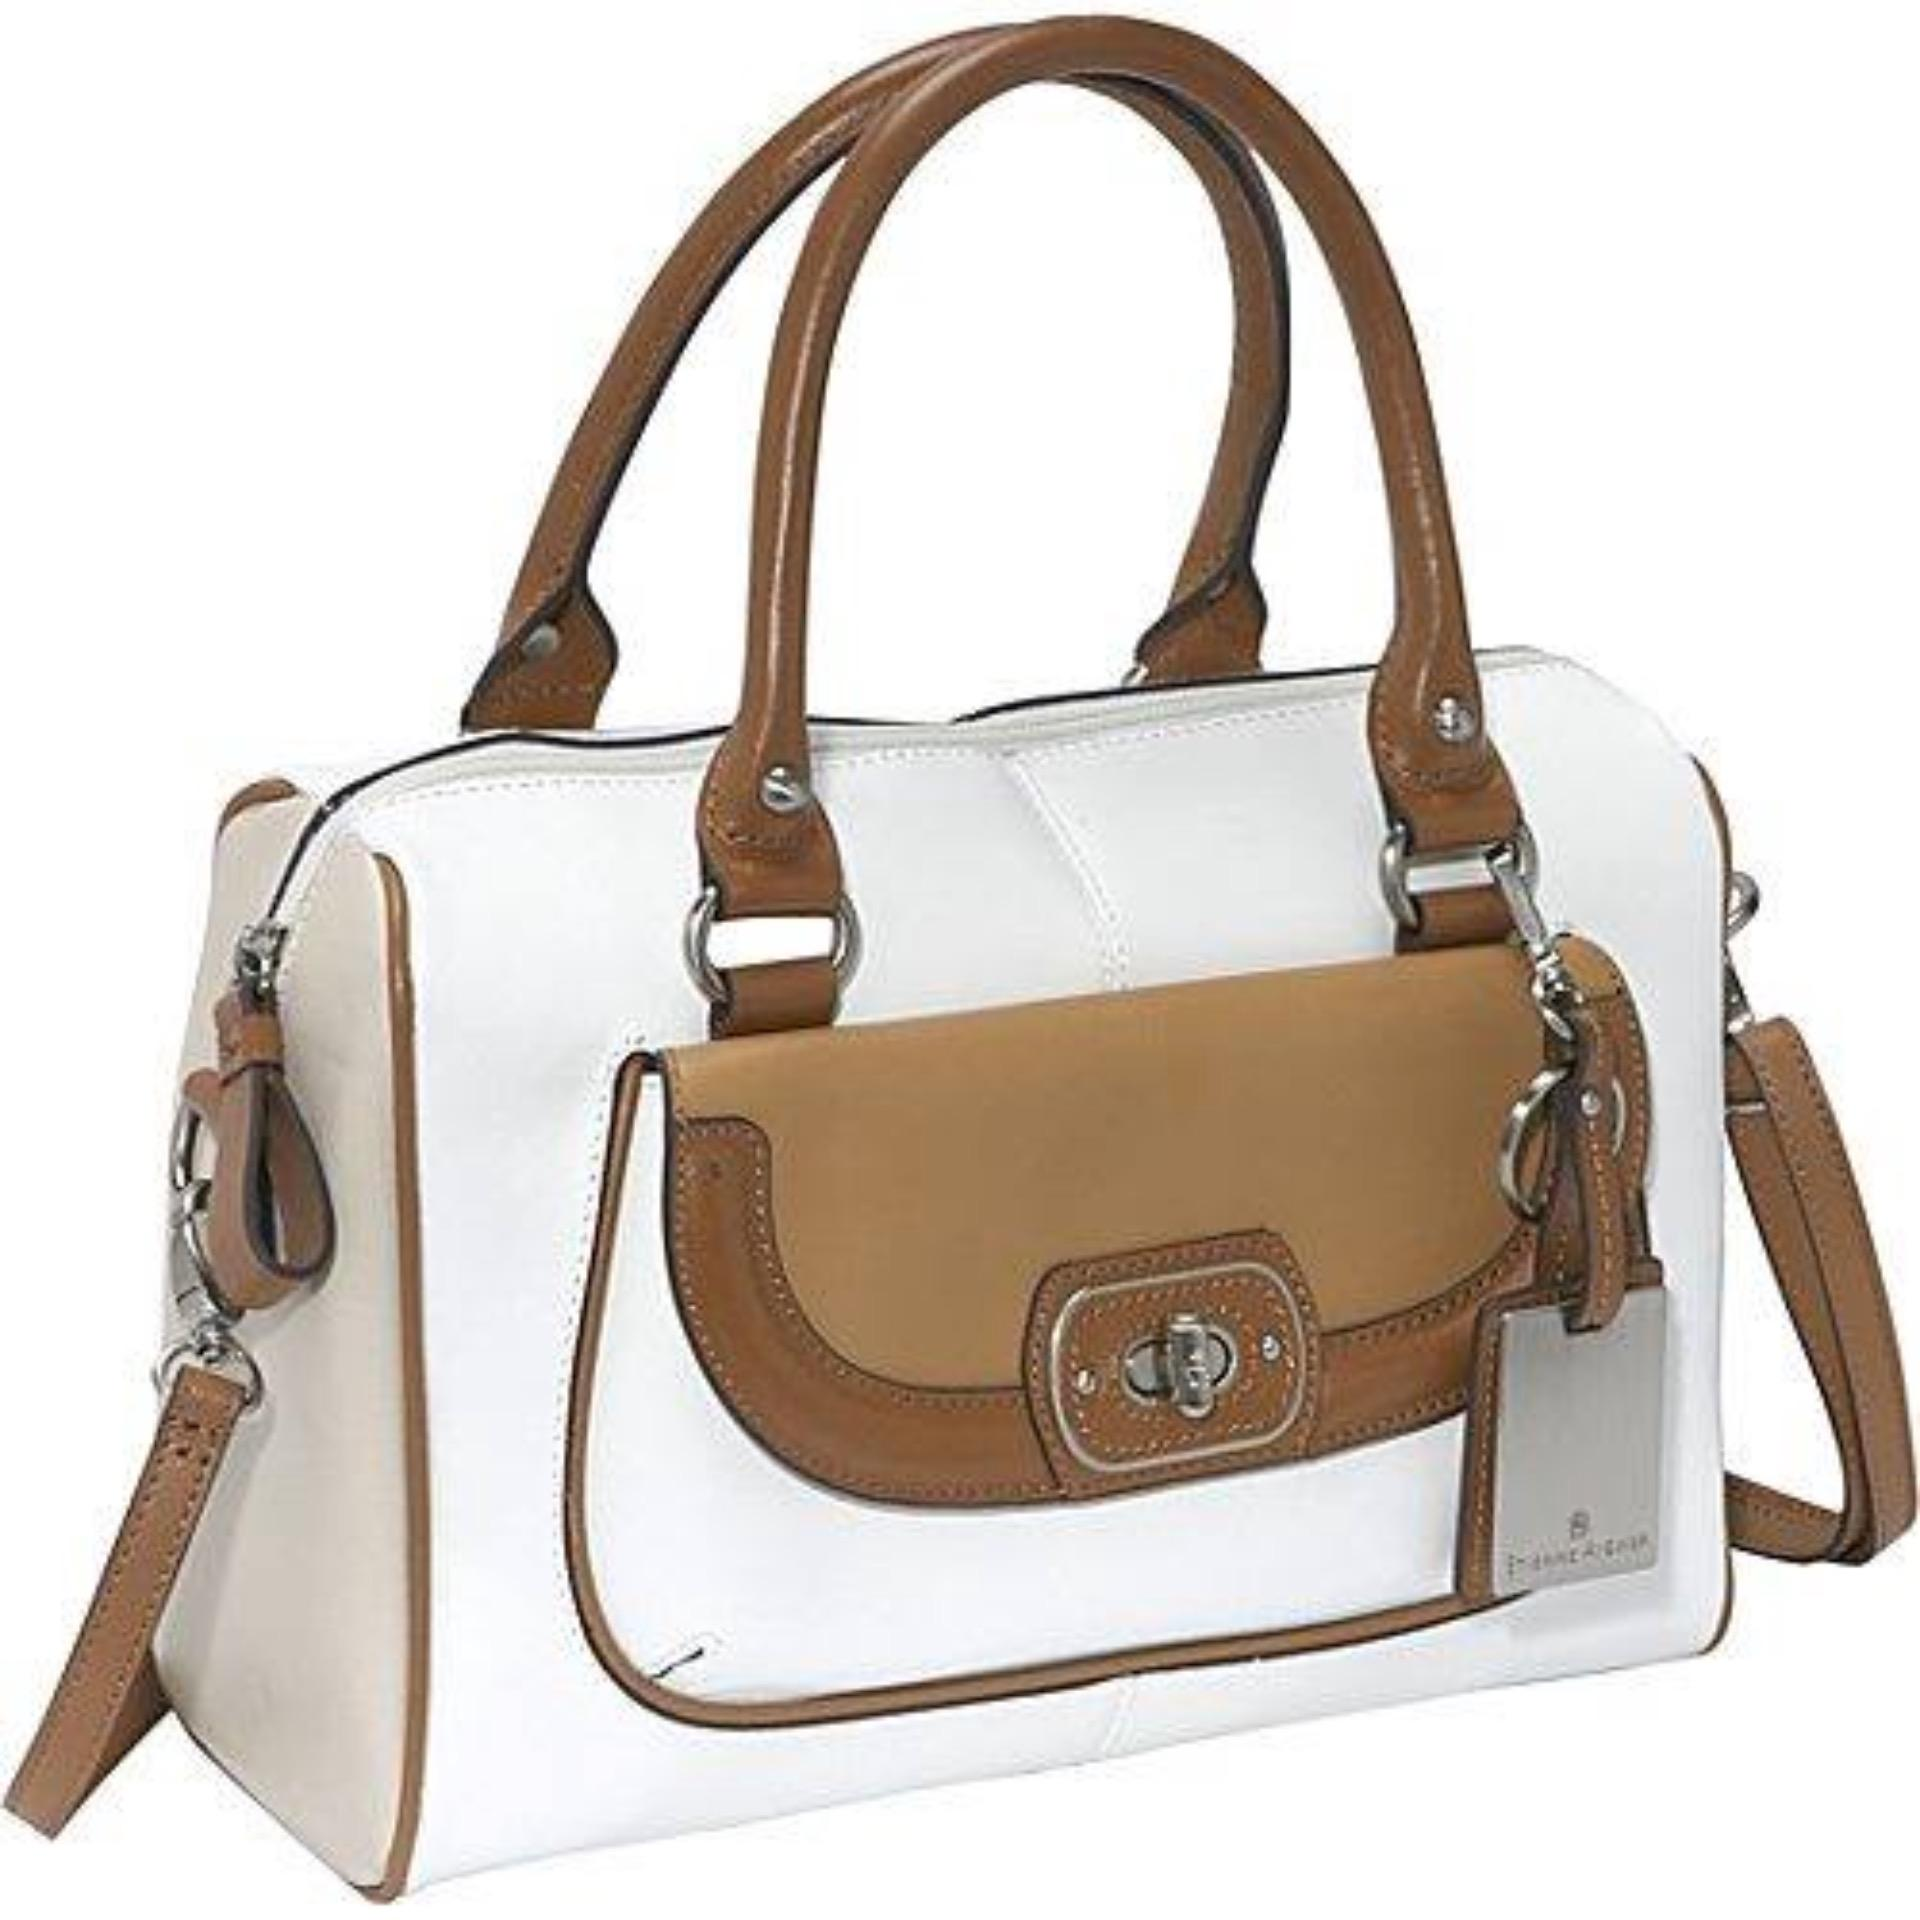 Etienne Aigner USA Valencia White Multi 80074 Authentic SALE..SALE